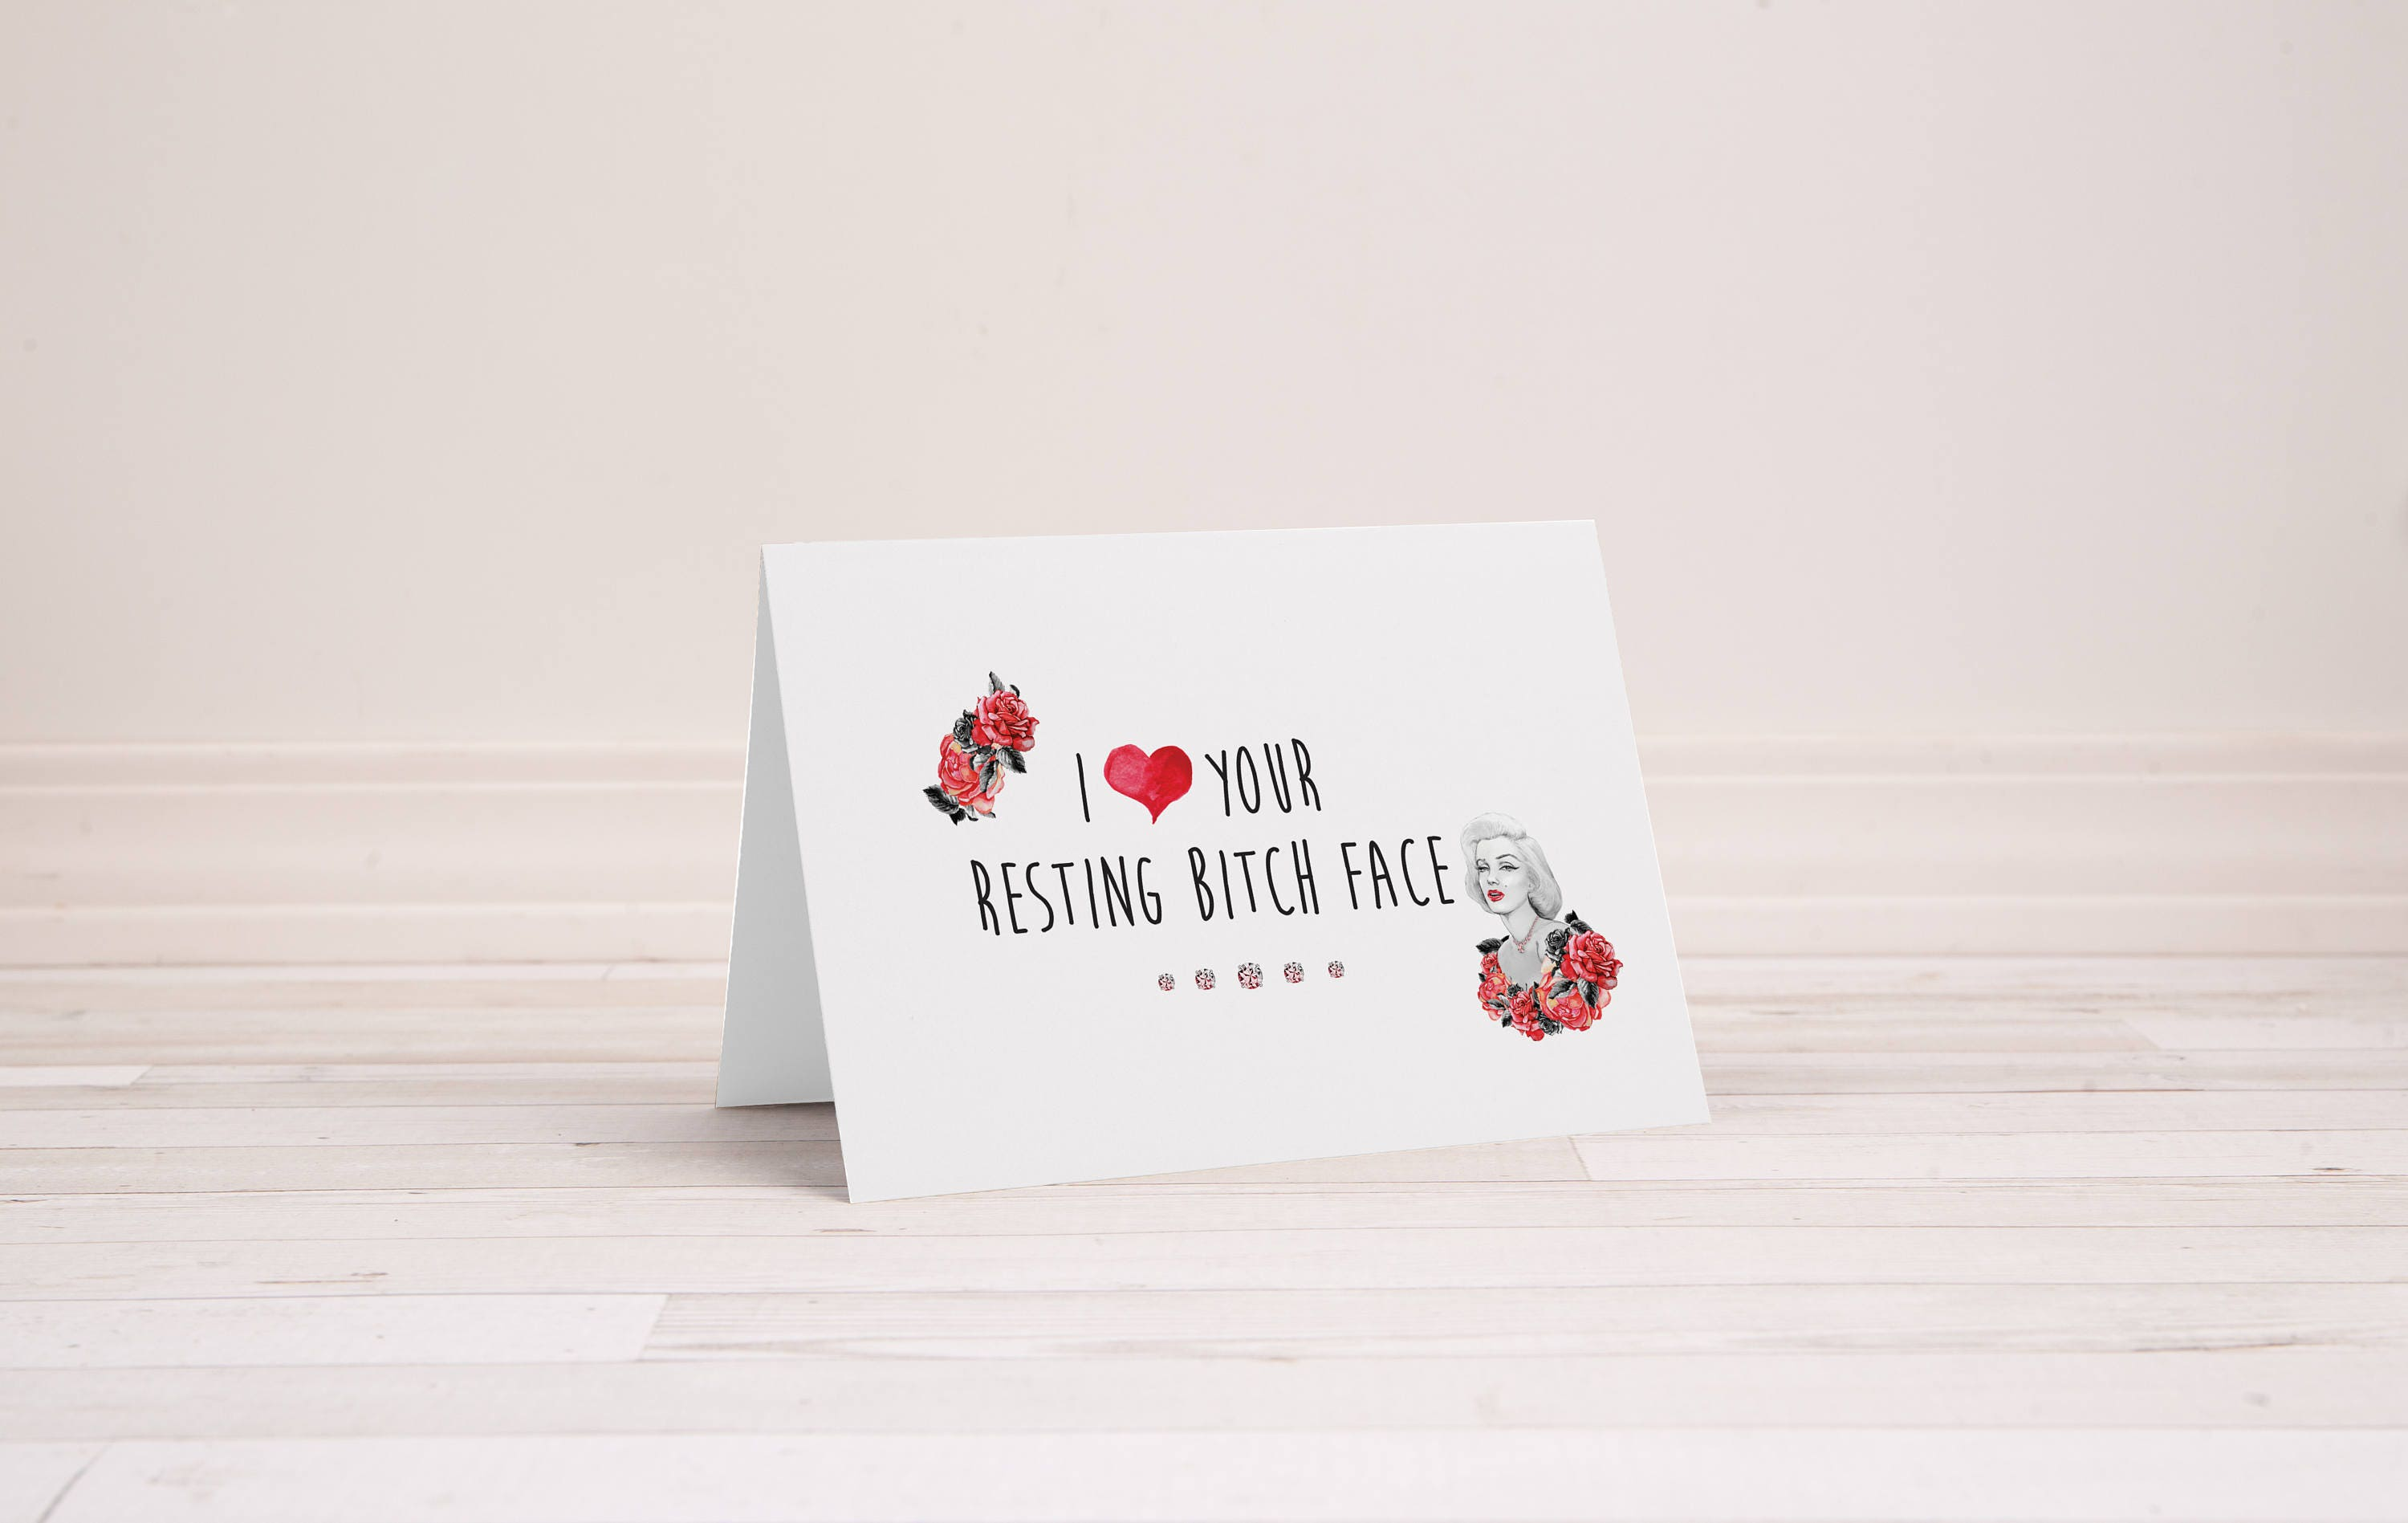 I Love Your Face Greeting Card Rseting B Face Rbf Funny